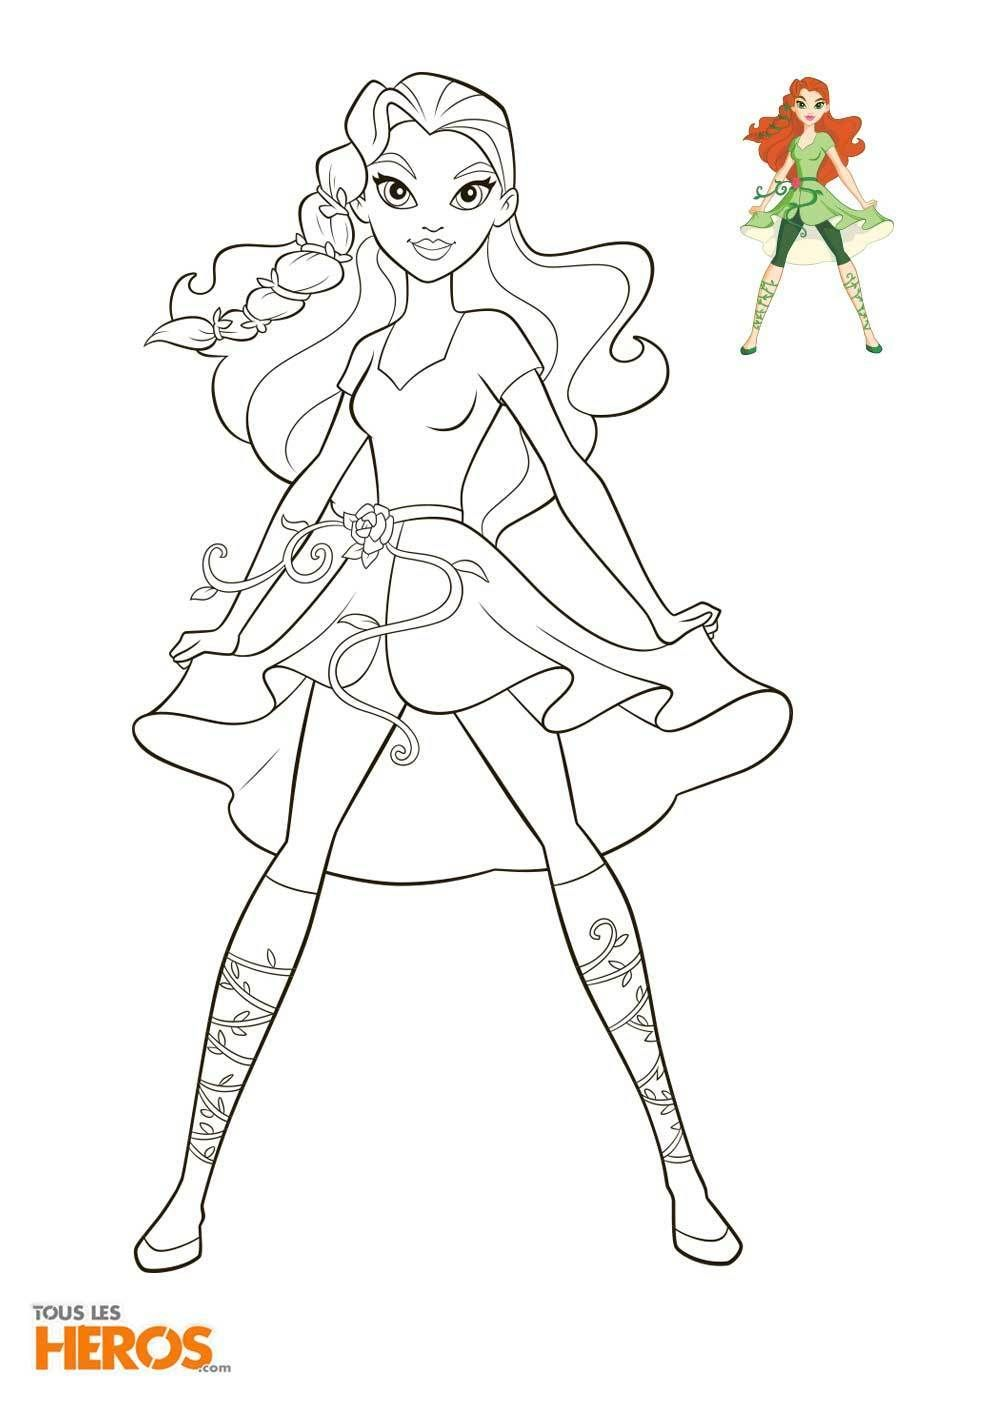 Coloriage Super Héros Fille in 2020 Superhero coloring